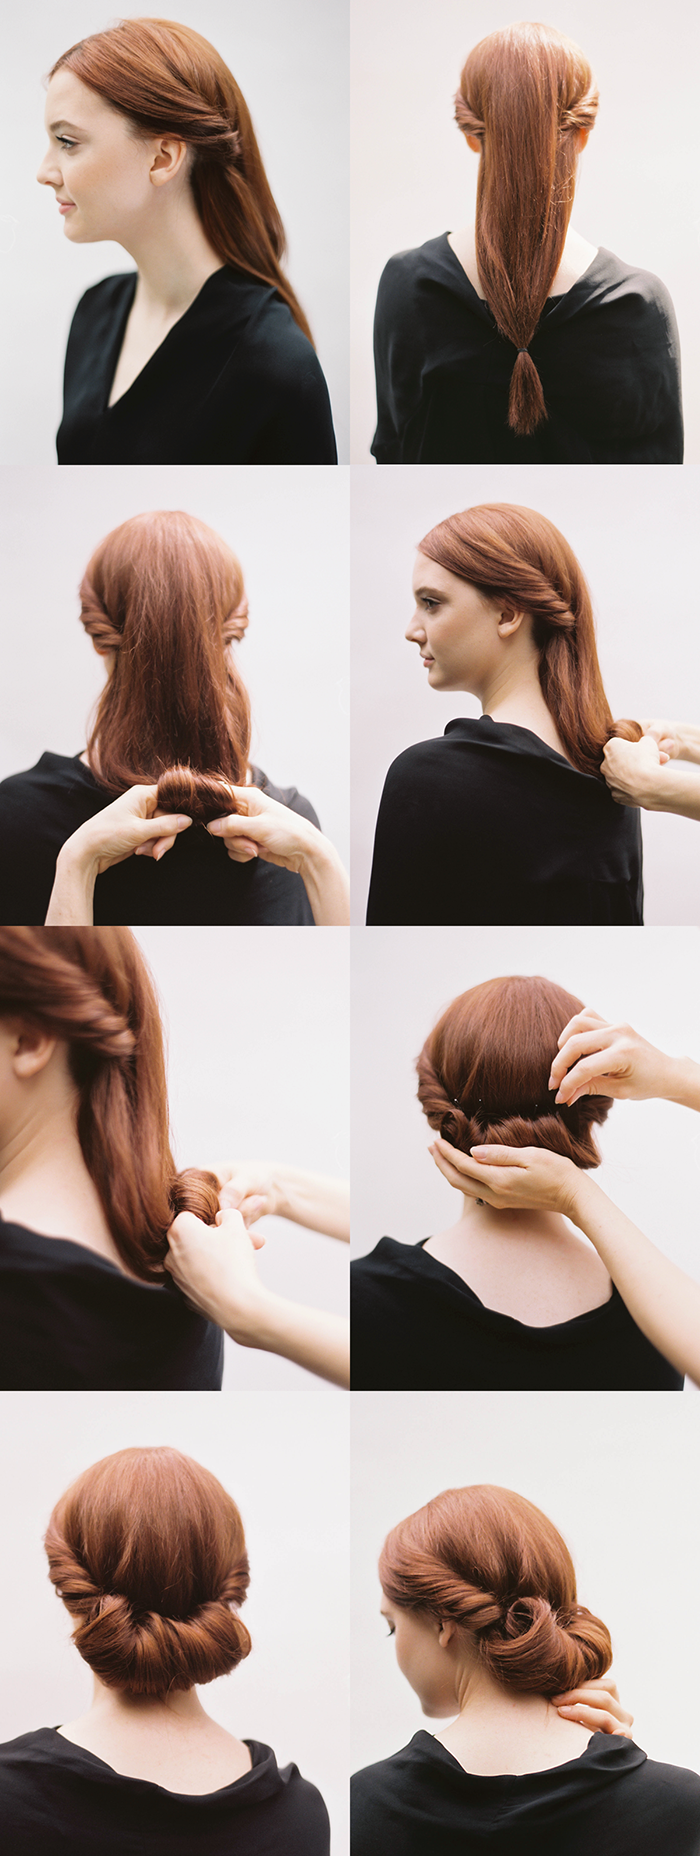 Easy step by step hair tutorials for all hair types Diy fashion of hairstyle